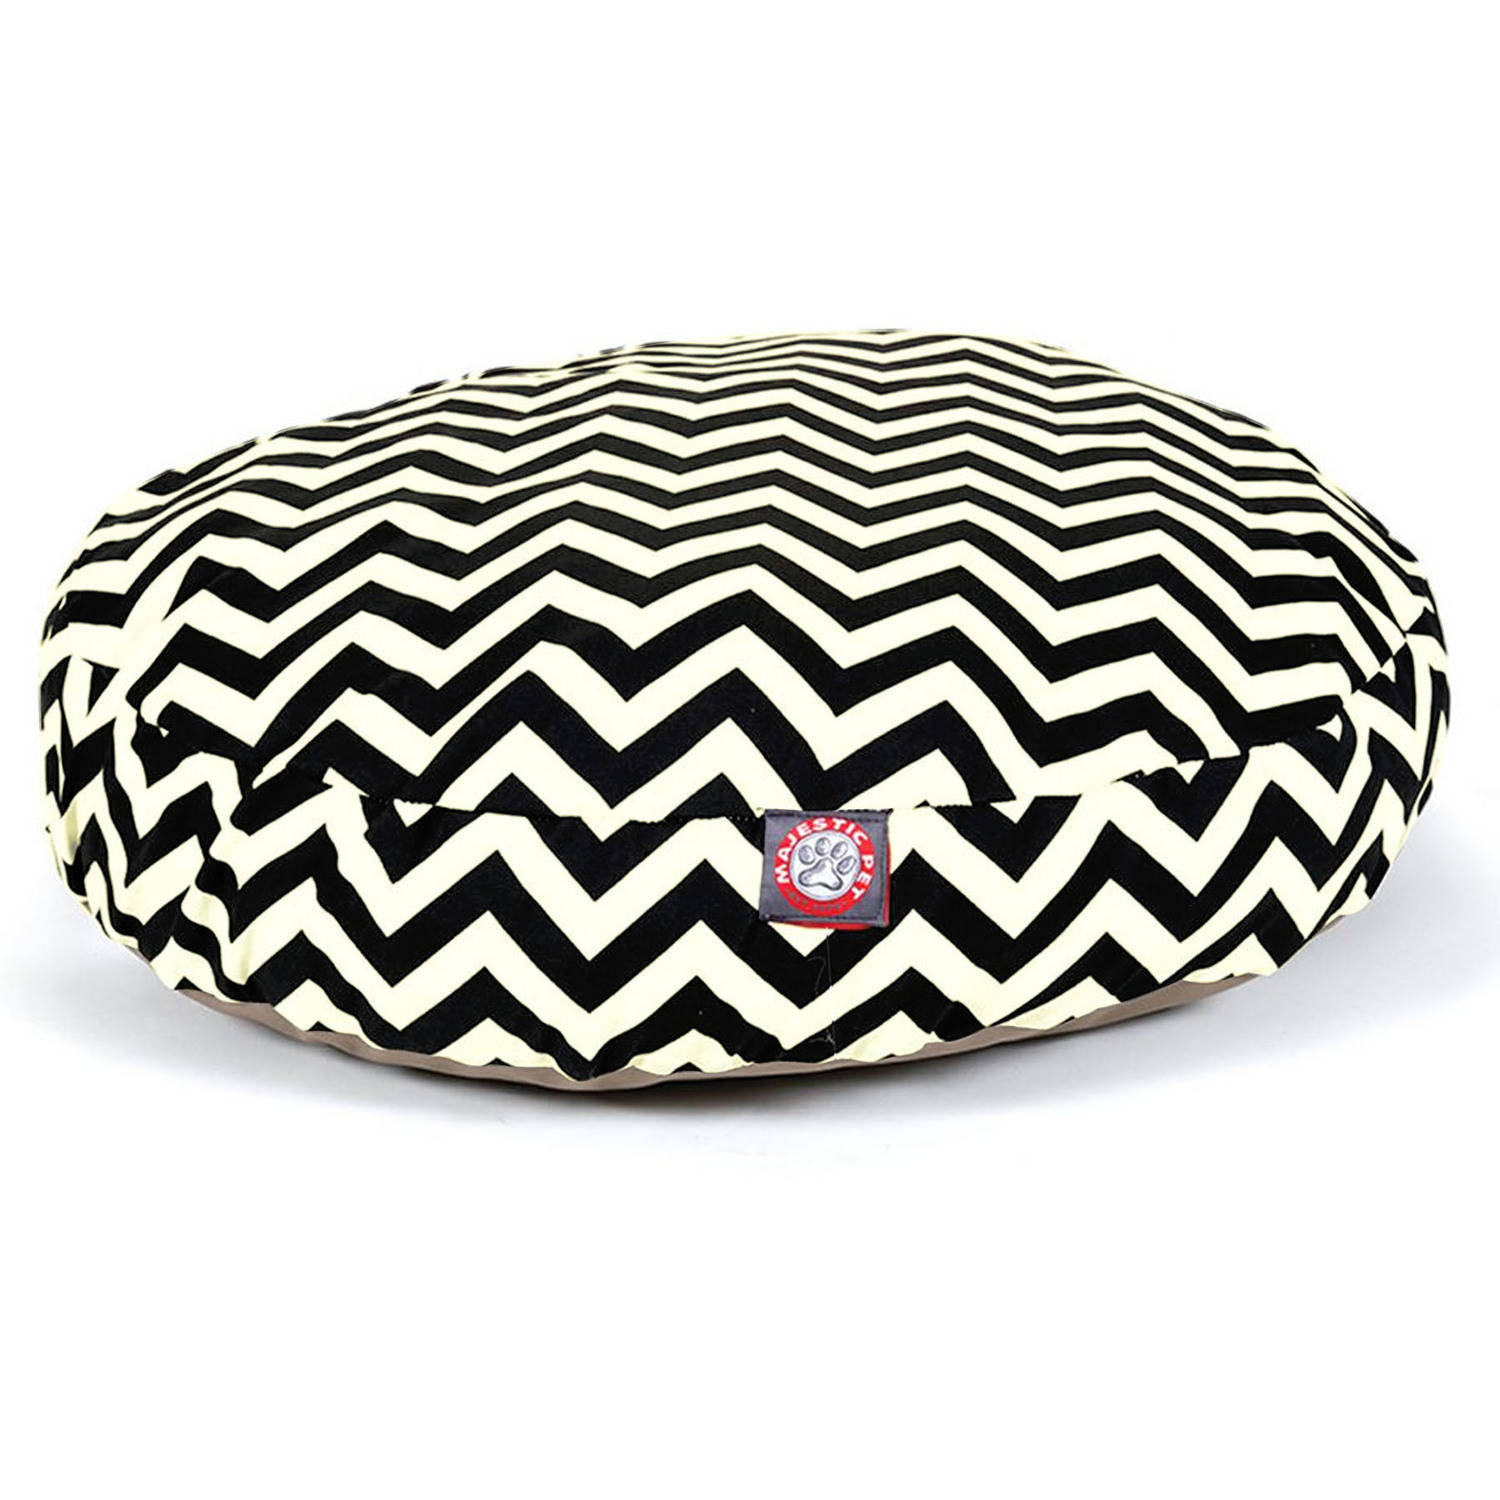 Majestic Pet Products Chevron Round Pet Bed, Black